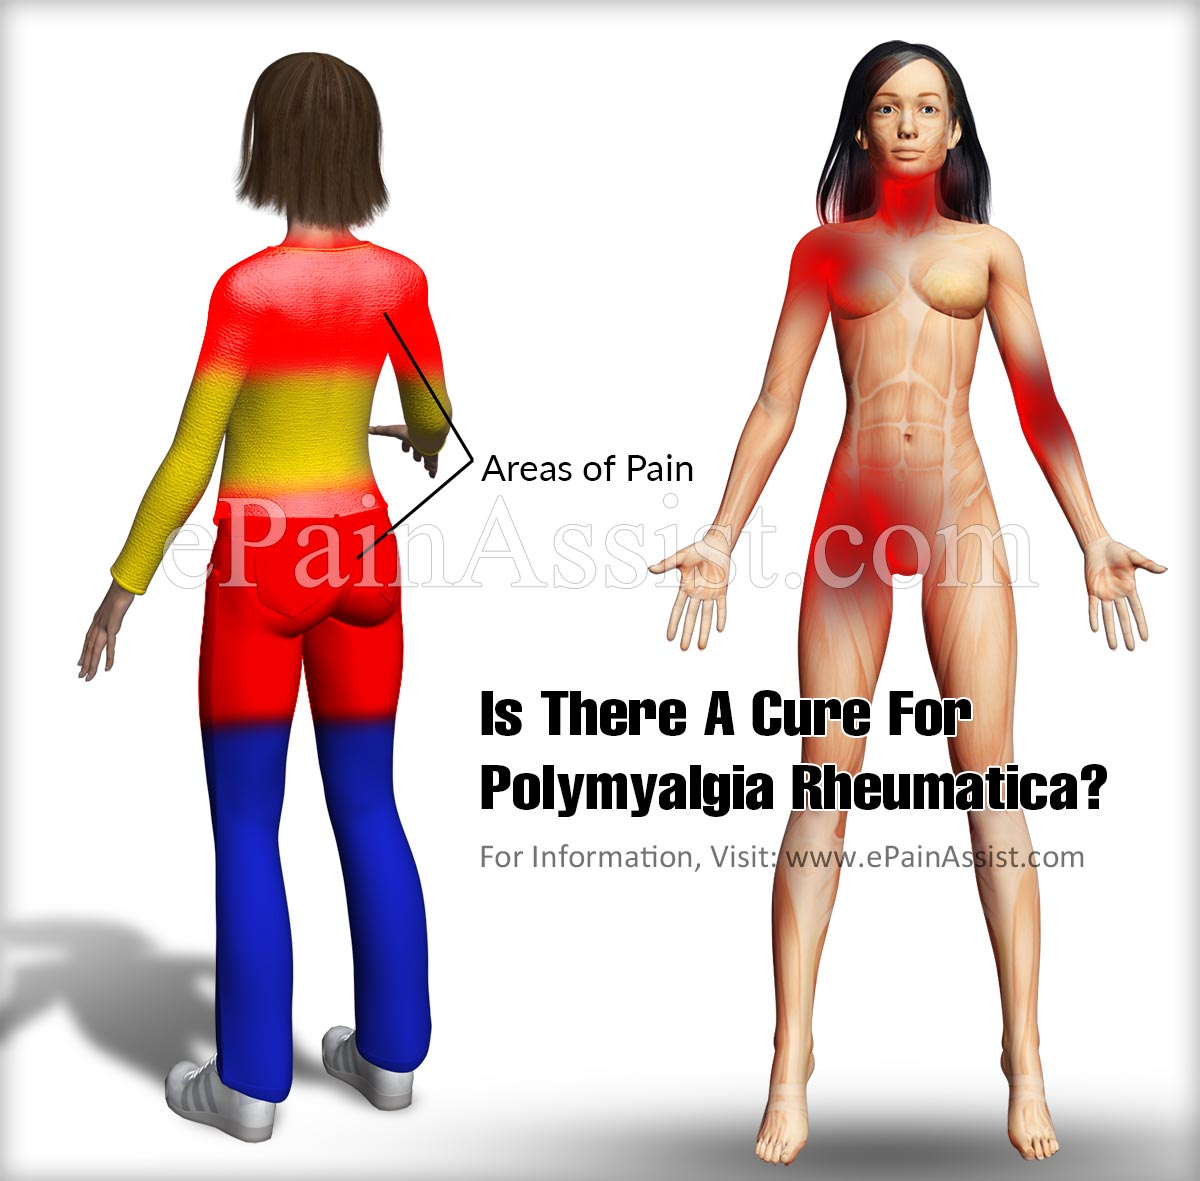 Is There A Cure For Polymyalgia Rheumatica?